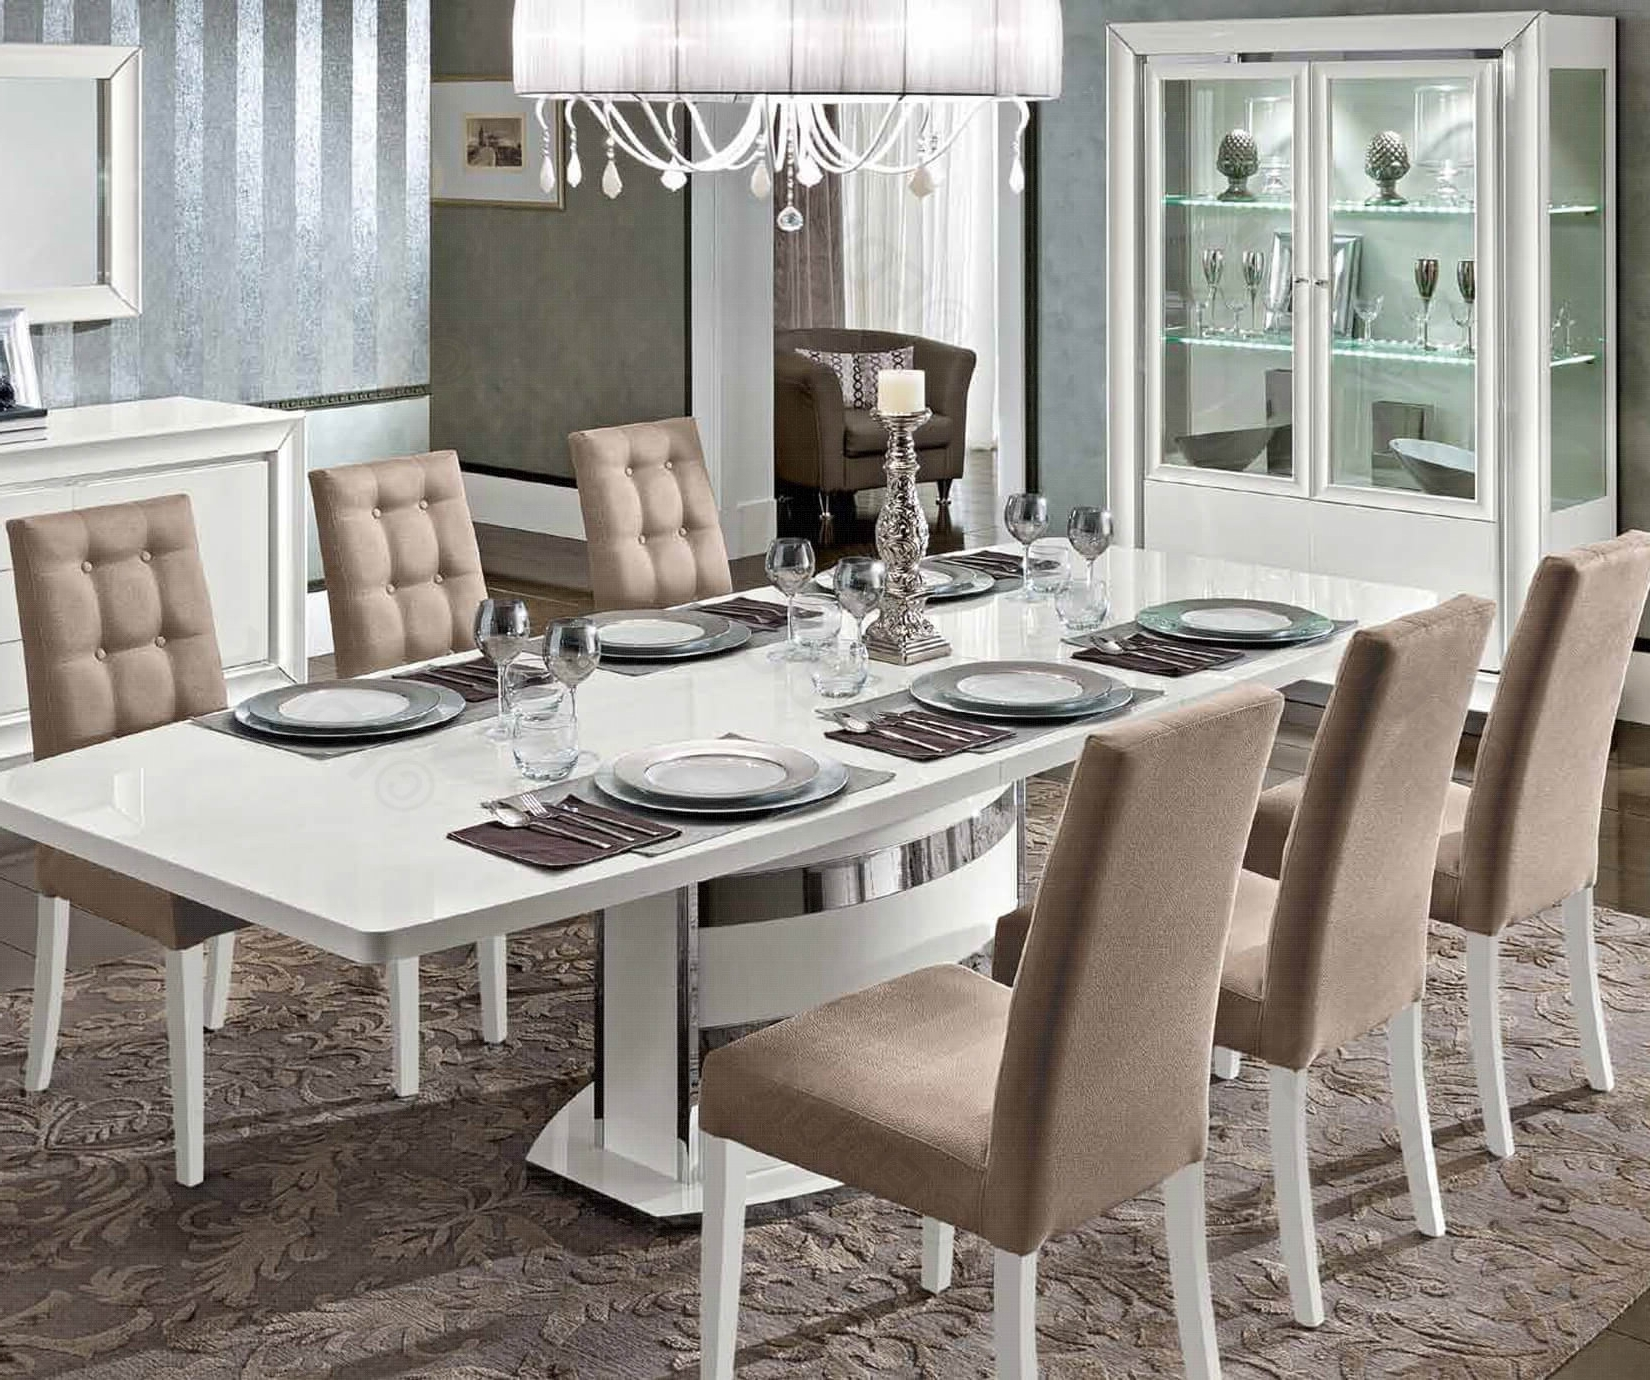 White Dining Tables With 6 Chairs With Regard To 2018 Camel Group Dama Bianca (View 24 of 25)